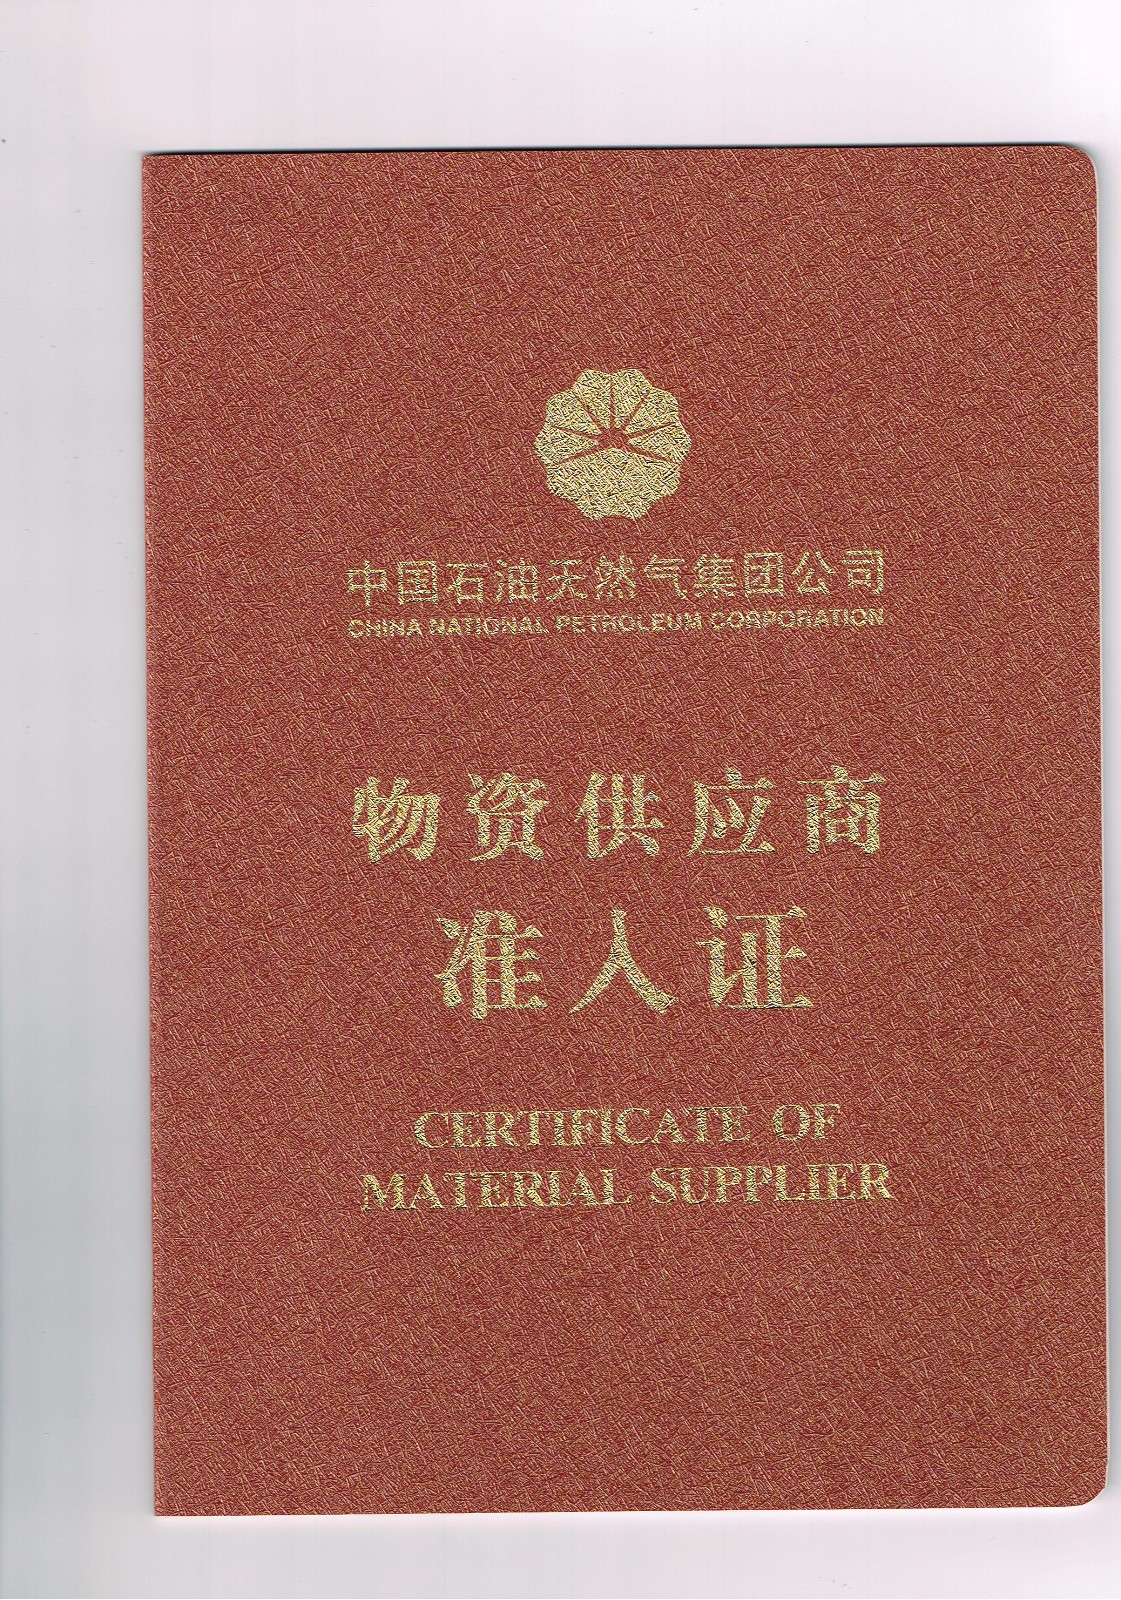 CHINA NATIONAL PETHOLEUM CORPORATION  CERTIFICATE OF MATERIAL  SUPPLIER